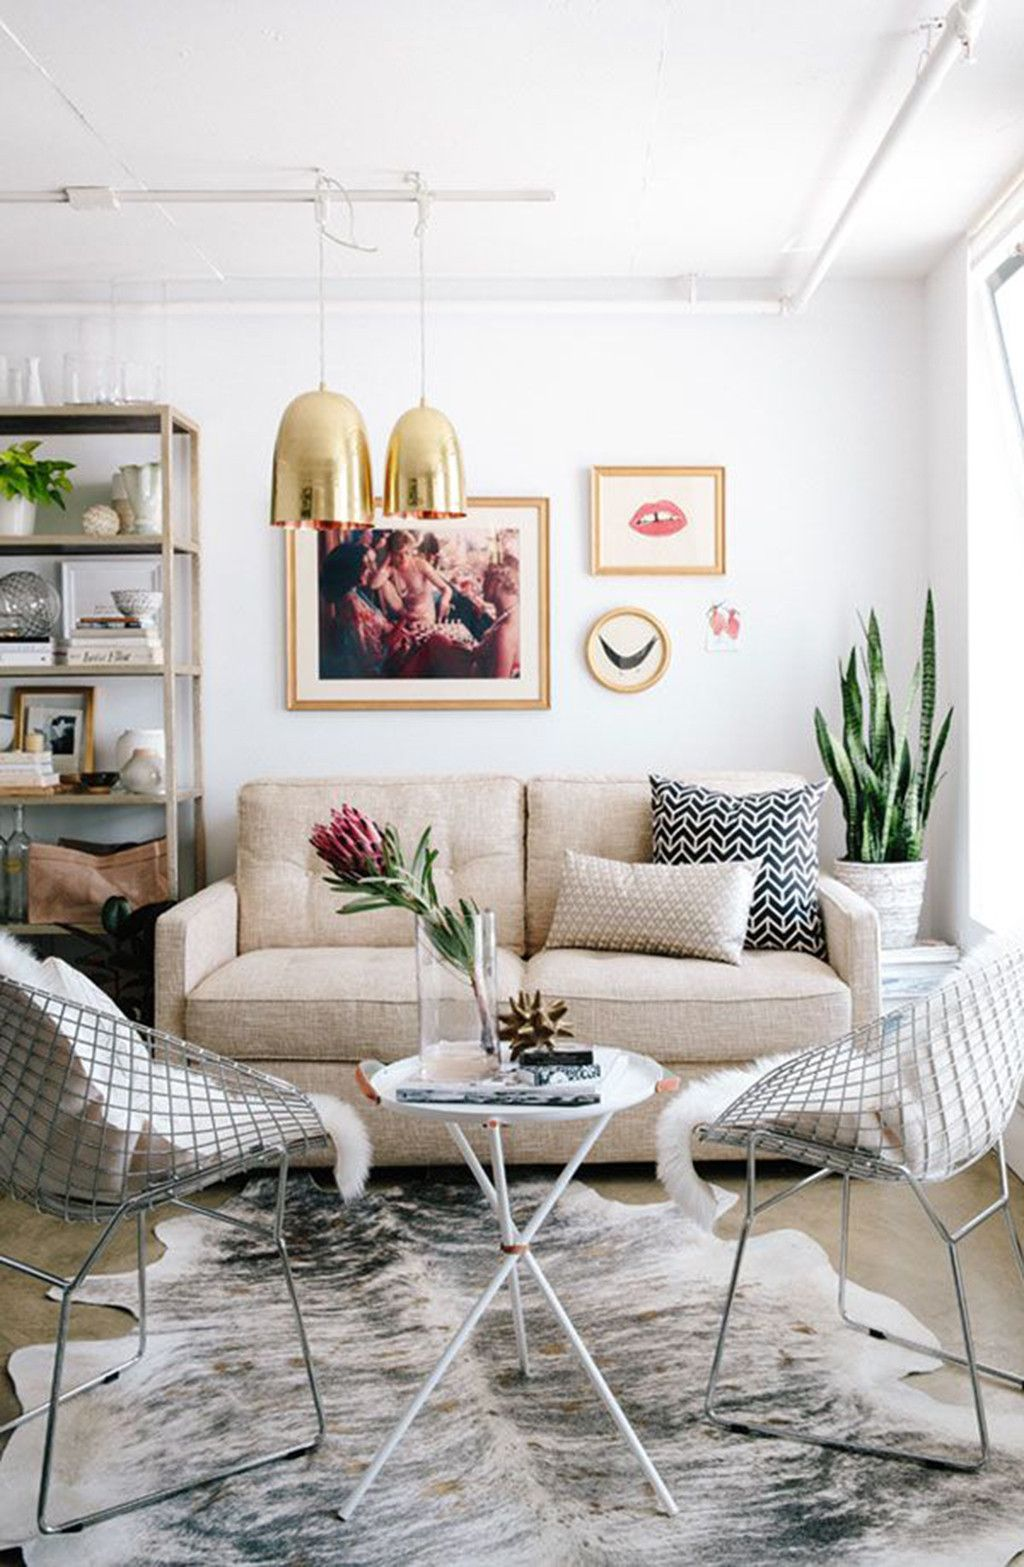 50 Living Room Designs For Small Spaces Wohnzimmer Einrichten Wohnzimmer Design Wohnzimmer Einrichten Ideen